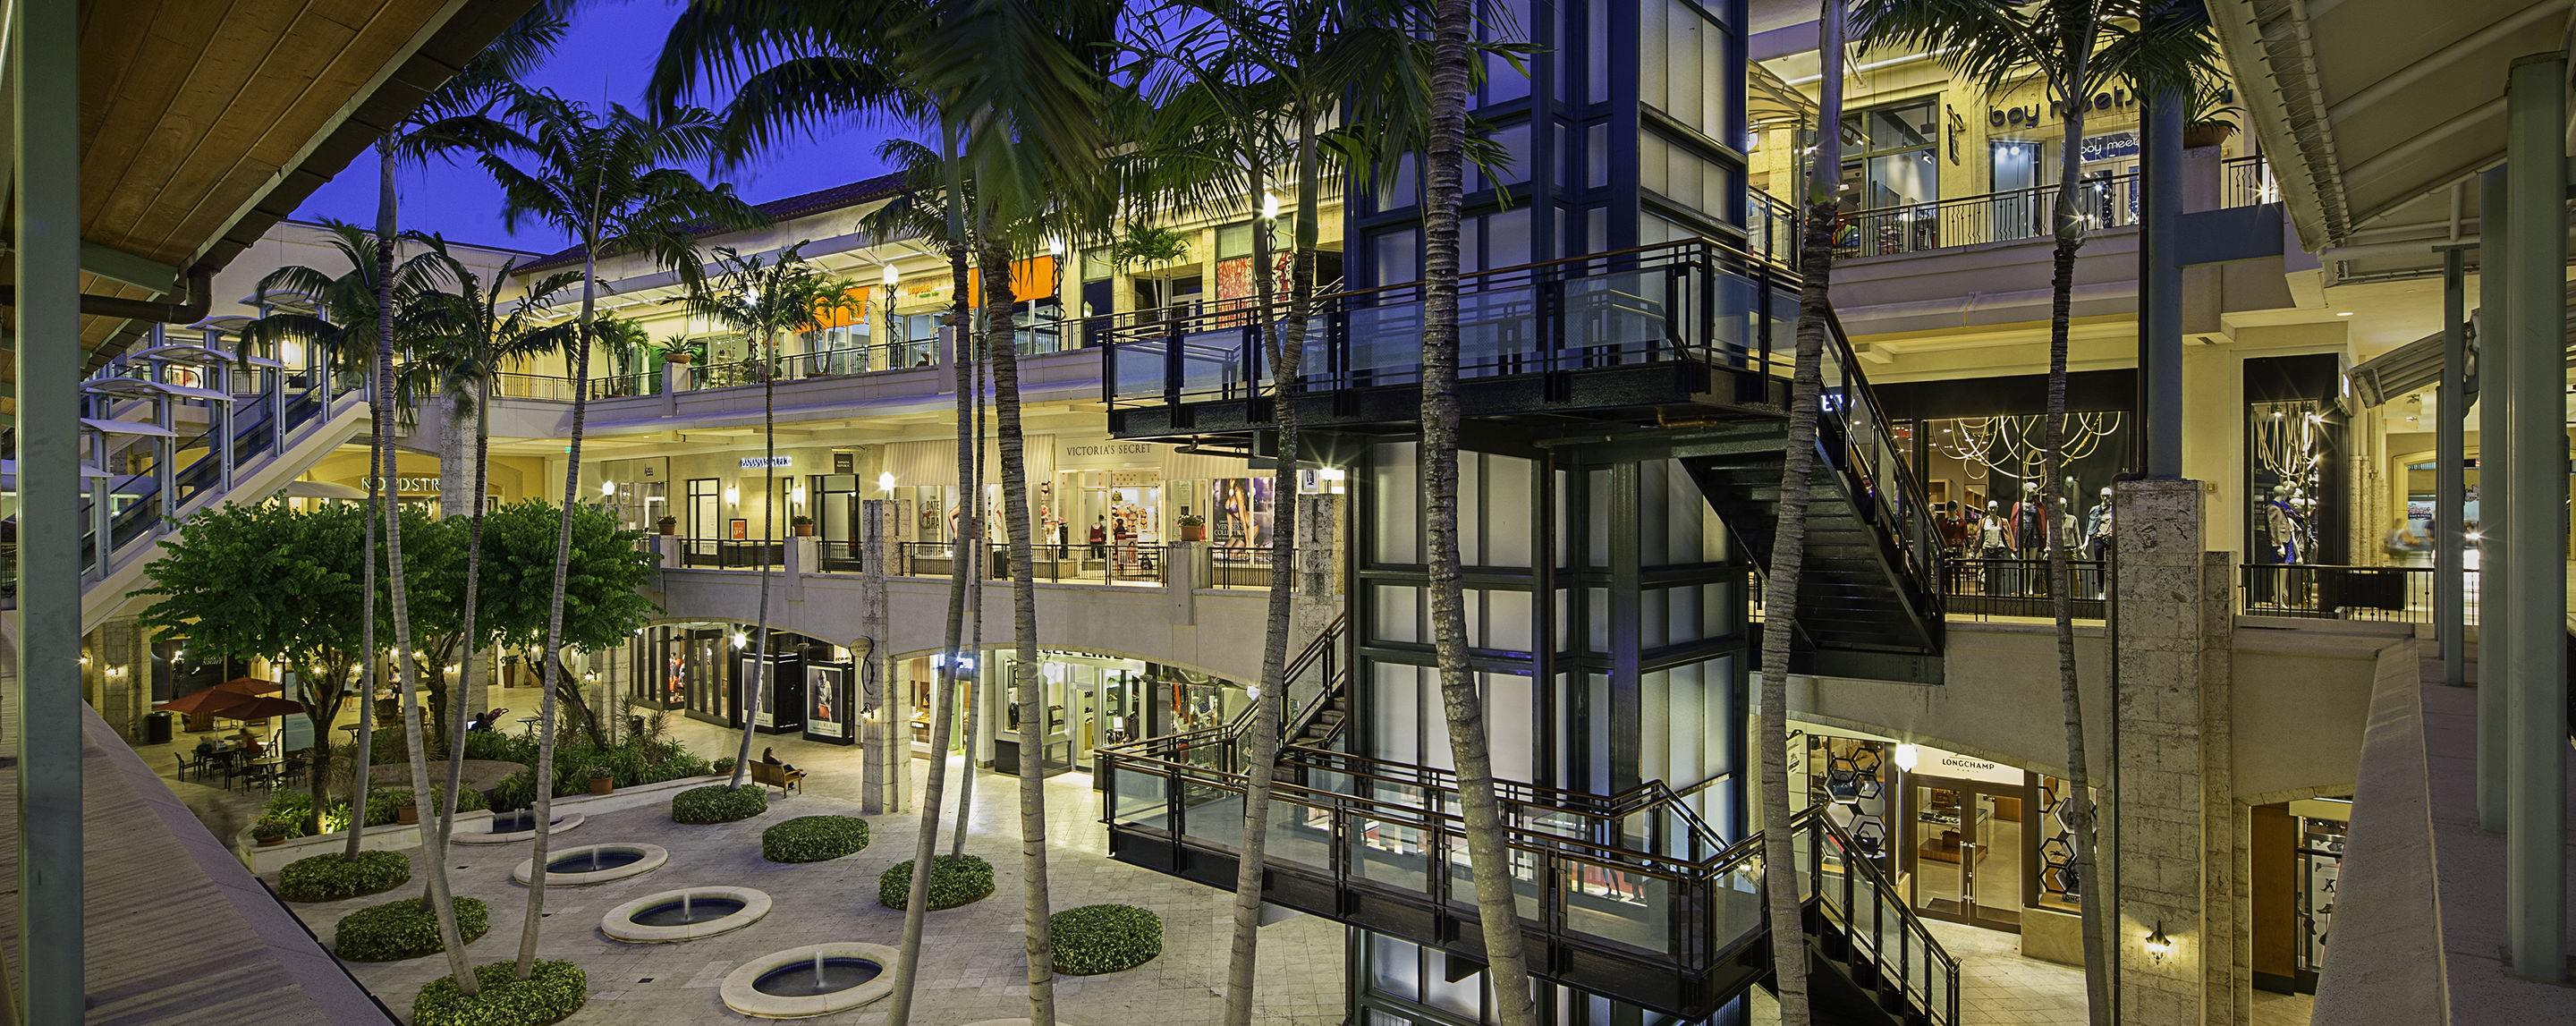 Shops at Merrick Park image 2